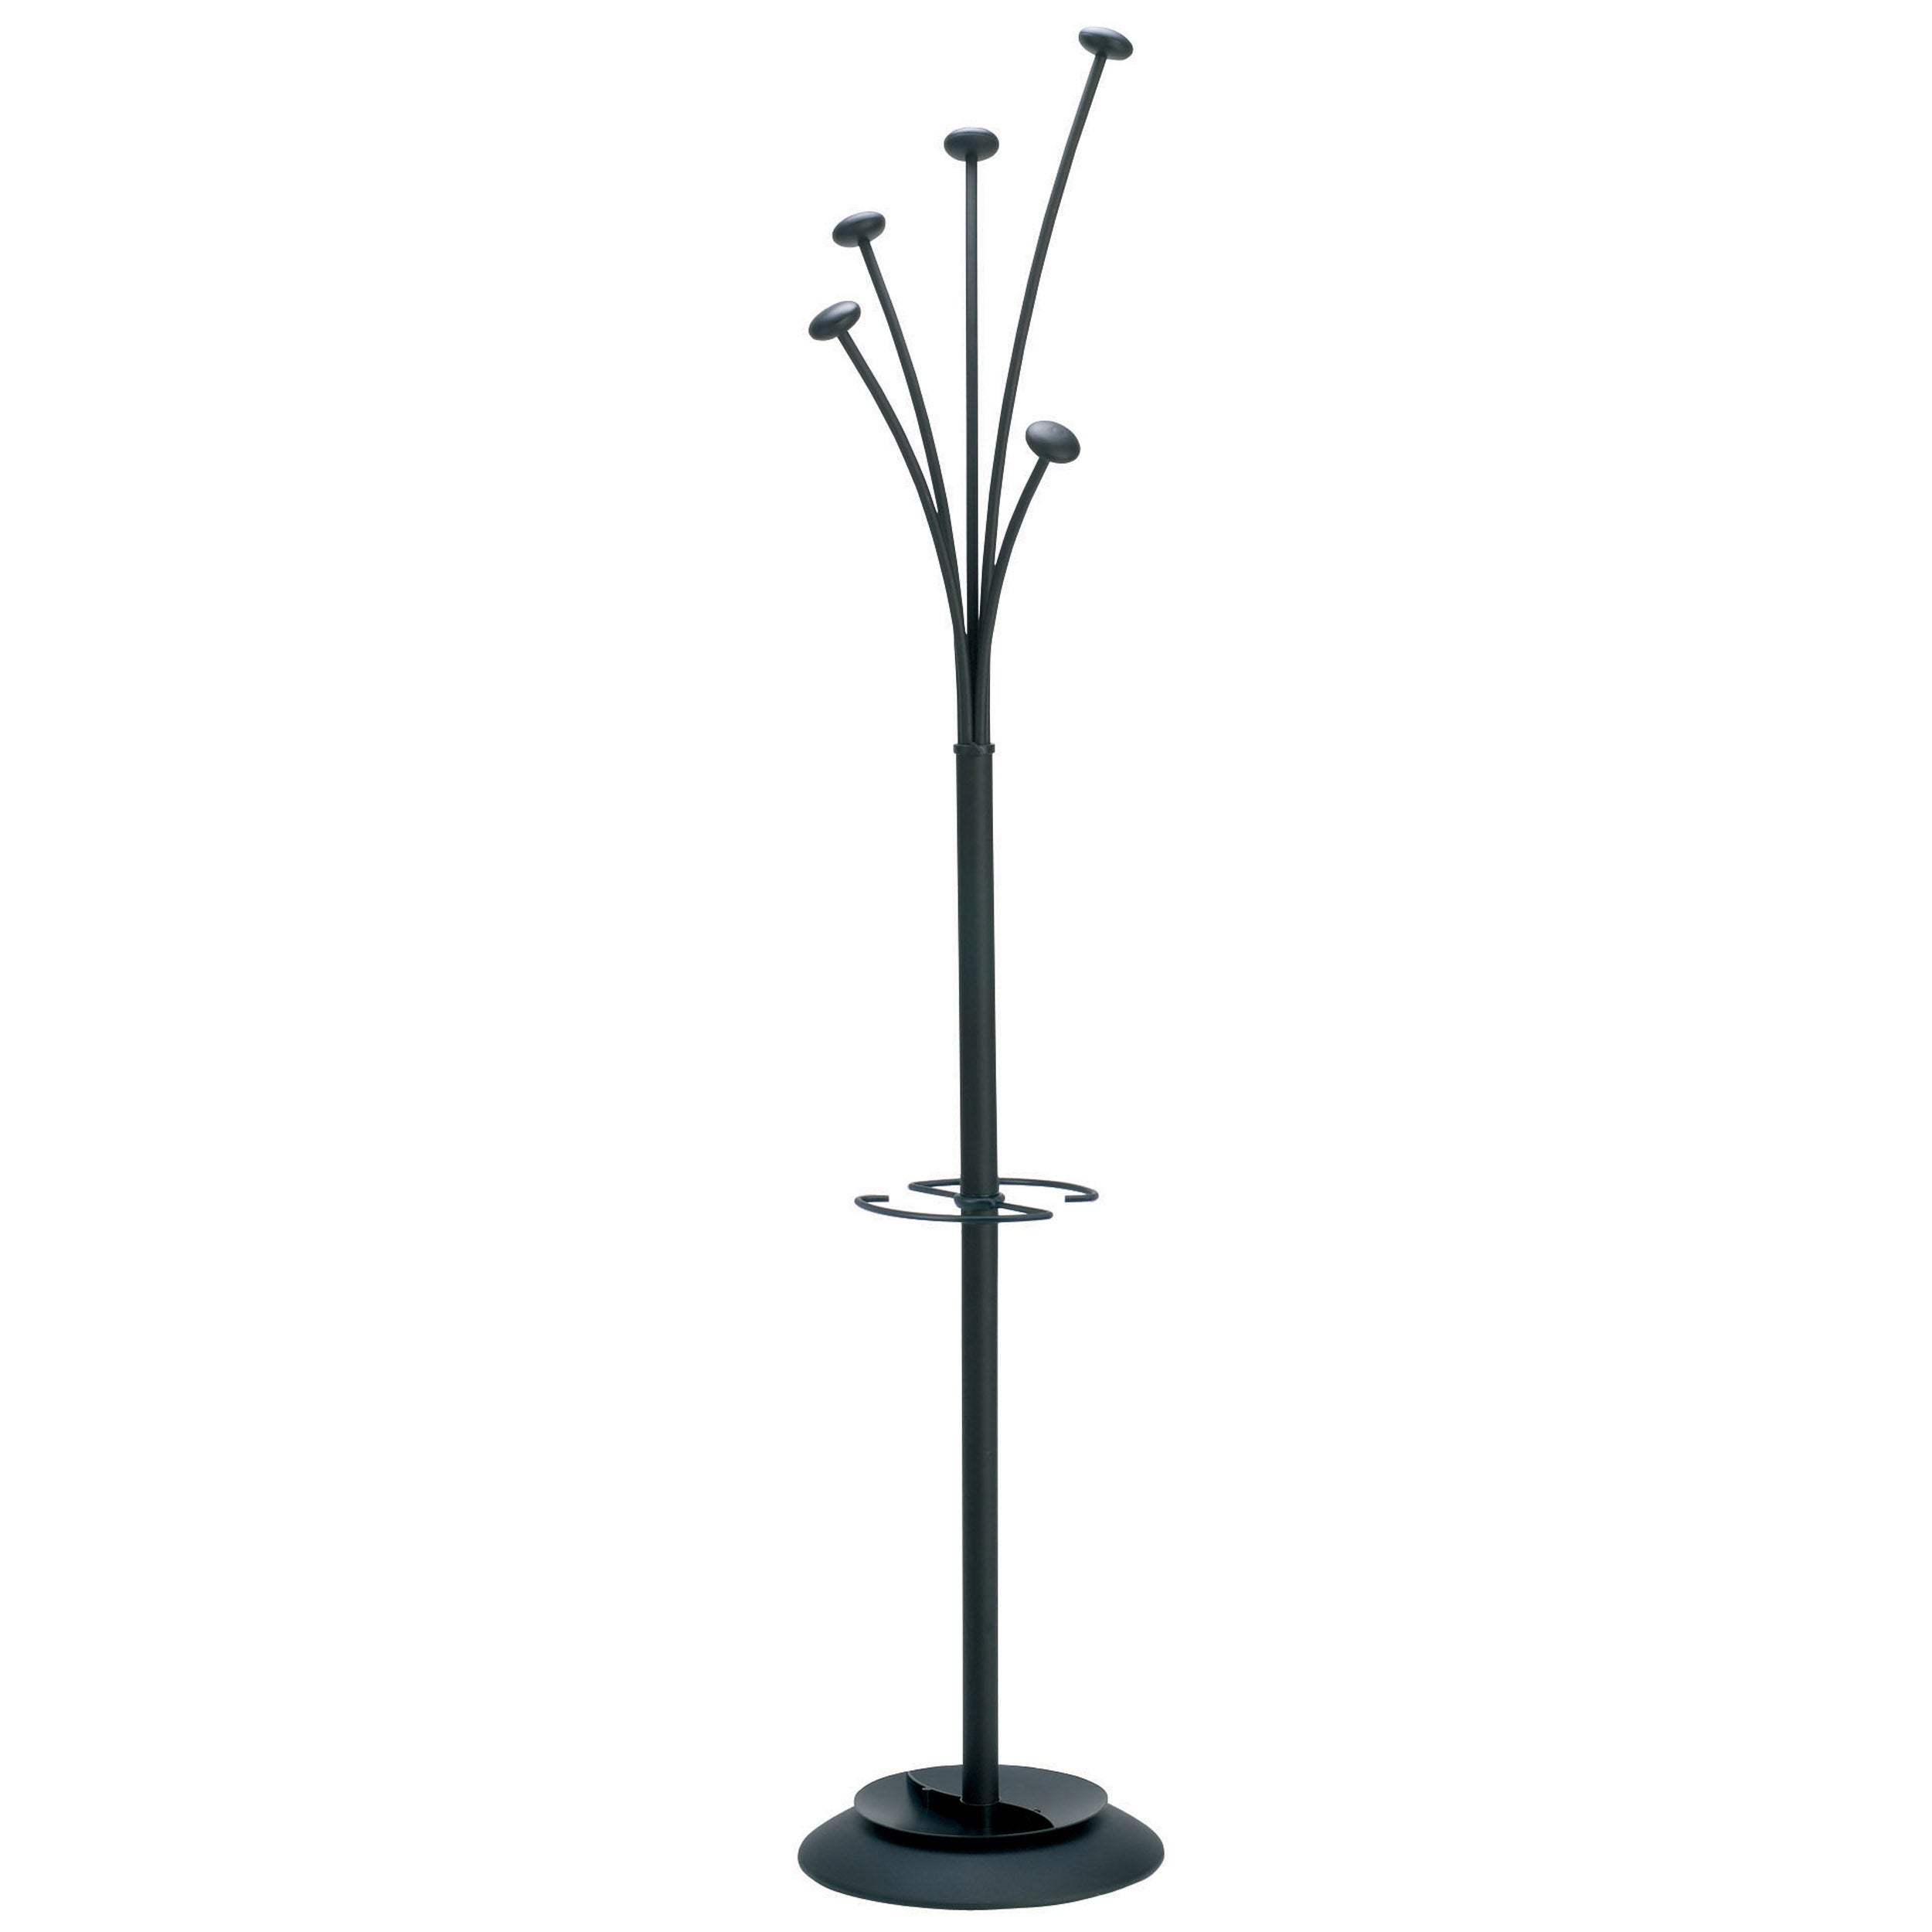 Alba Festival Modern Large-Capacity Indoor Coat Stand with Umbrella Holder at Sears.com